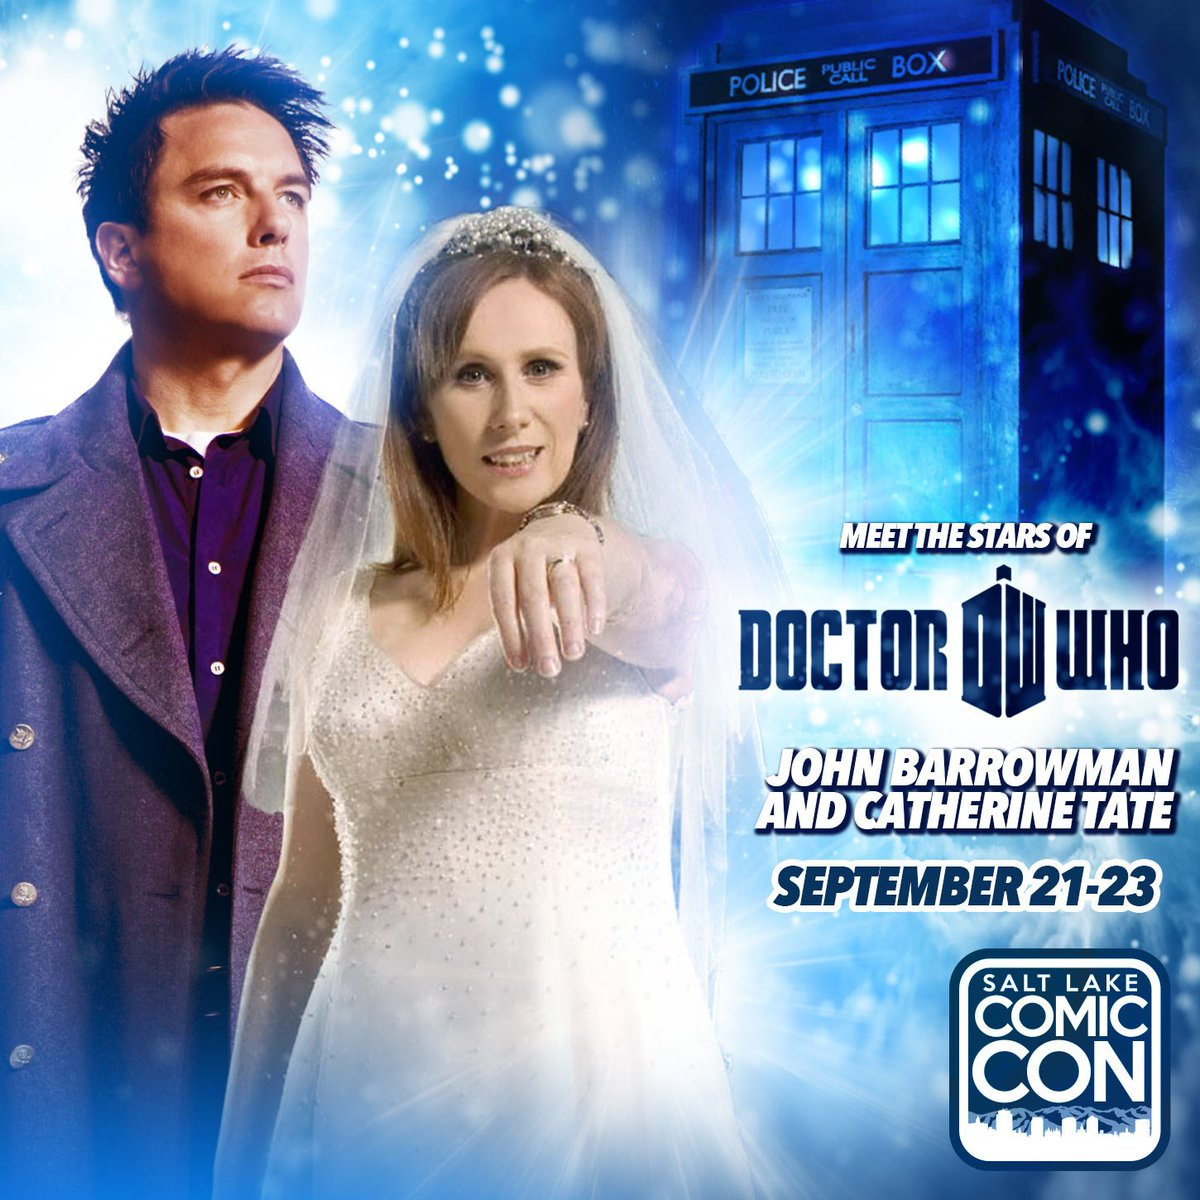 Meet Catherine Tate and John Barrowman from Doctor Who at #SLCC17 !  http:// bit.ly/2qXxVvs  &nbsp;   #doctorwho #fandom <br>http://pic.twitter.com/IO0WWHsfyU